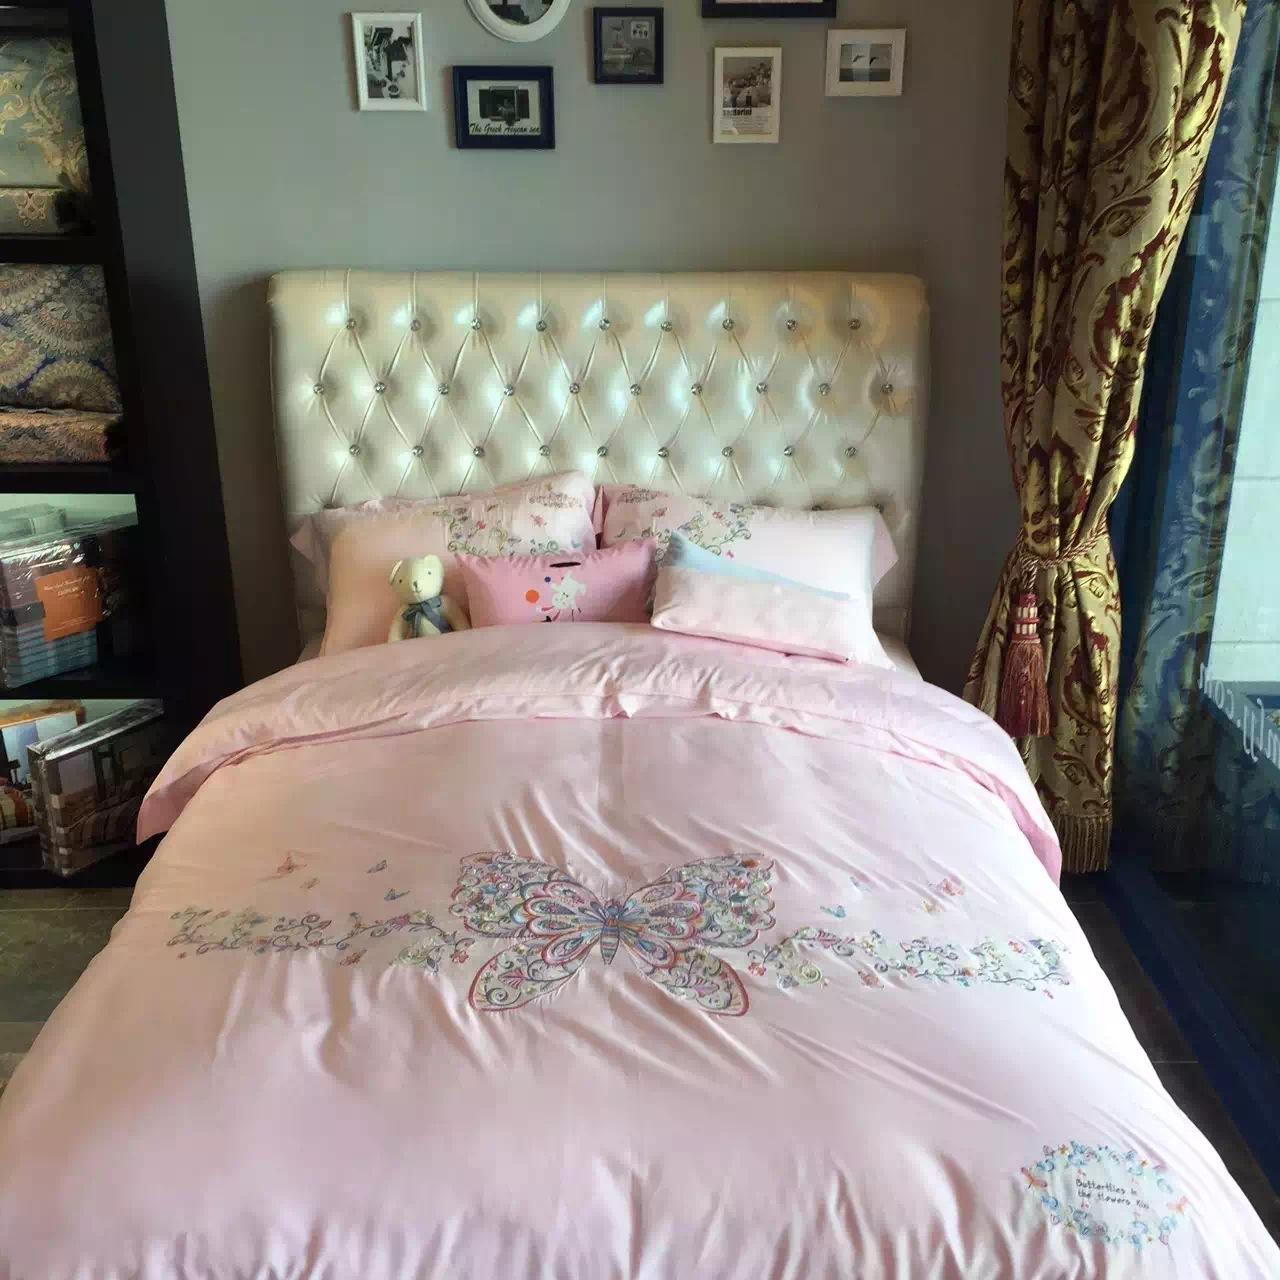 Best Sale Fine Butterfly Embroidery Bedding Sets High Quality Seaisland  Cotton Beddings Romantic Pink Bed Linen ...